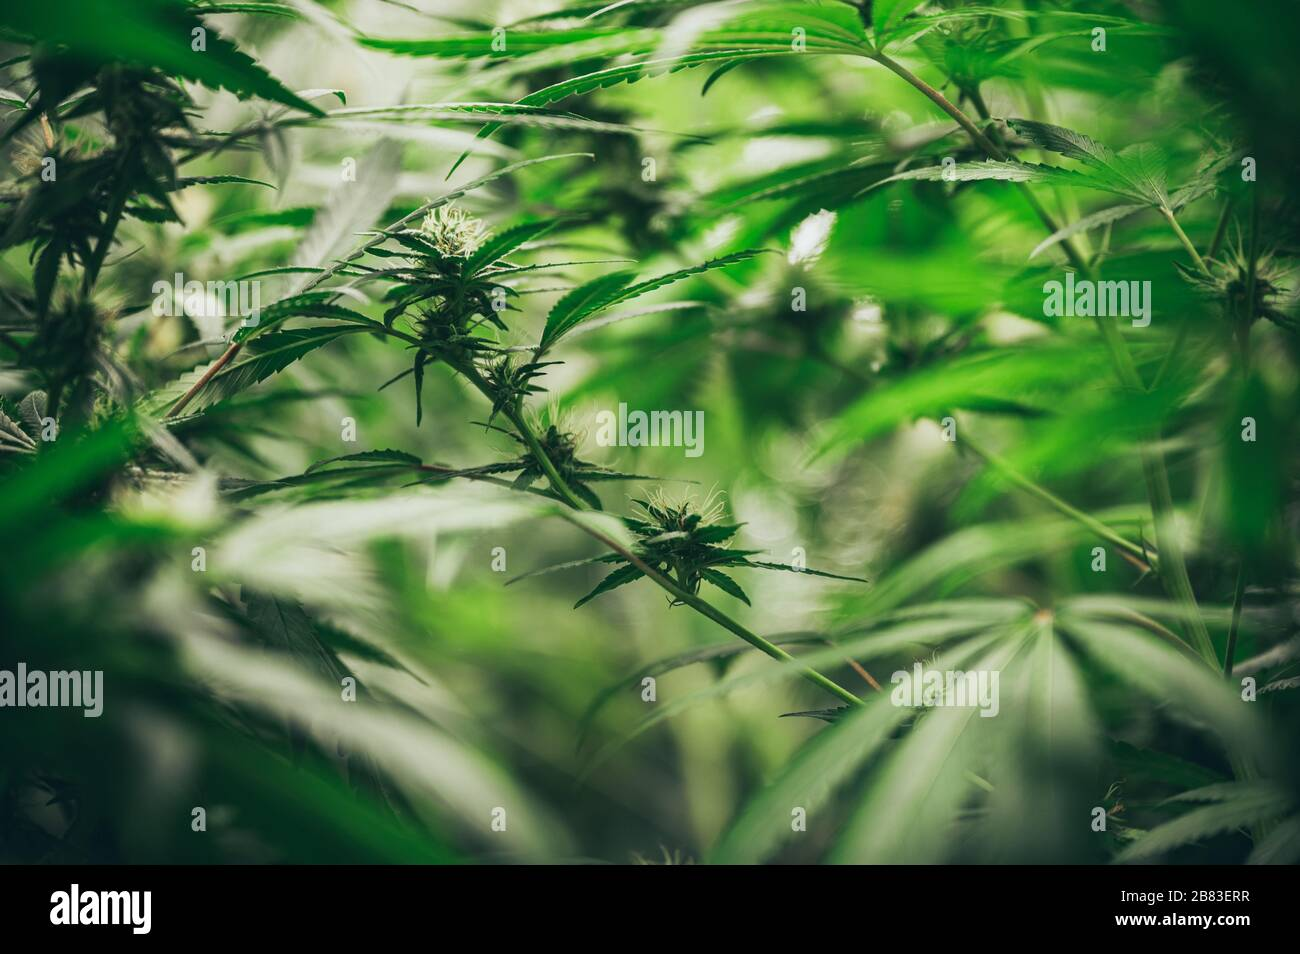 Commercial Hemp Farming In A Greenhouse Industrial Hemp Grown To Produce Cbd Oil And Other Hemp Derived Products Stock Photo Alamy